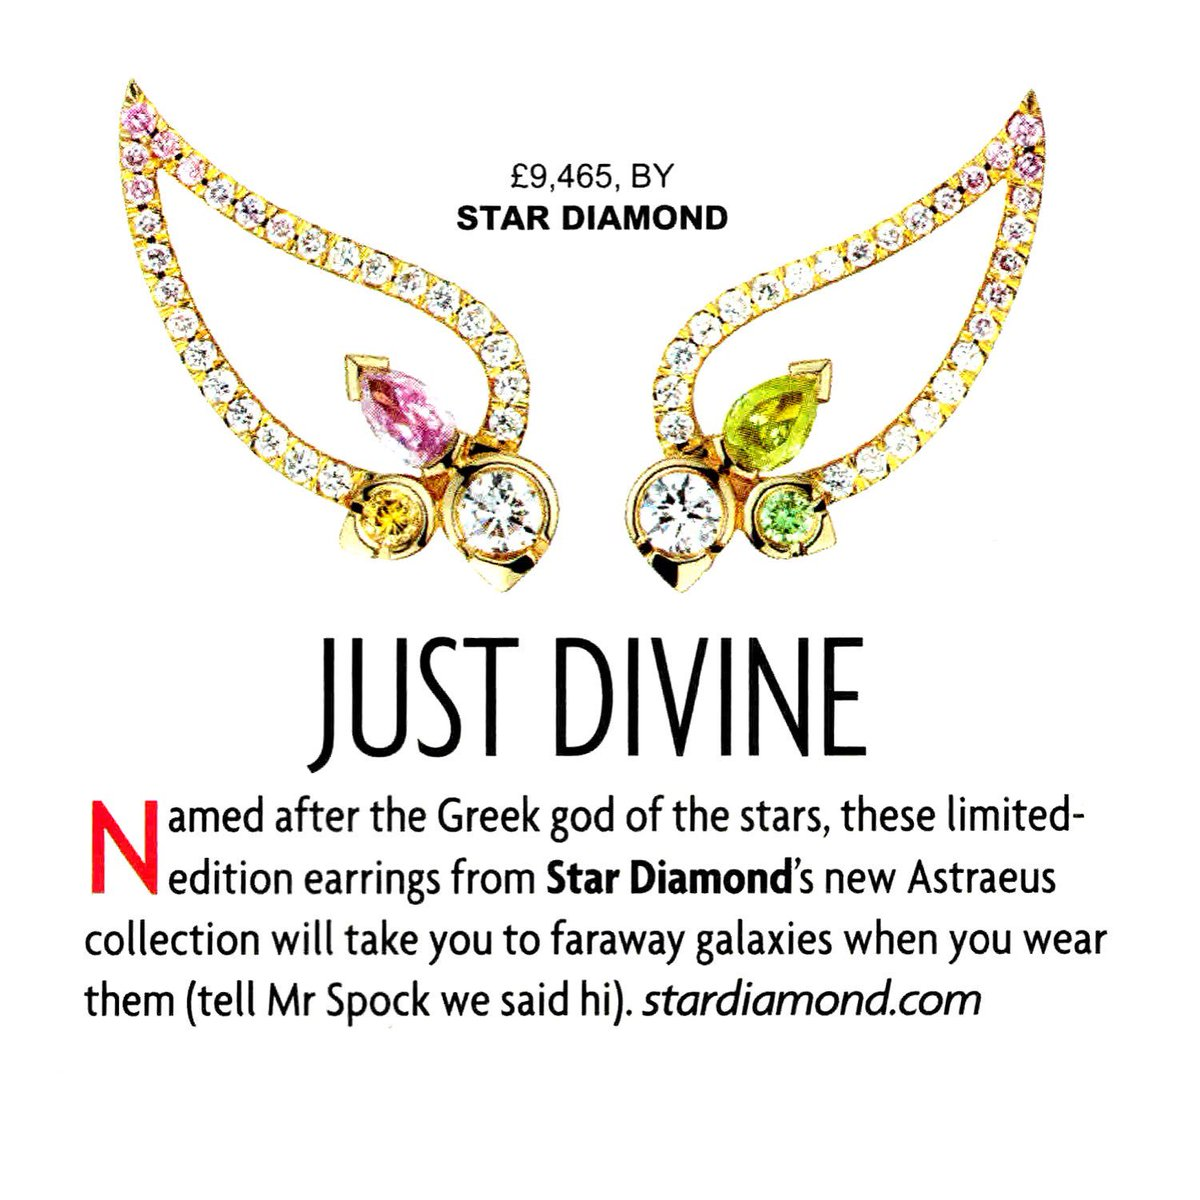 pendant pendants diamond upload beautiful amgad star product stars com all a